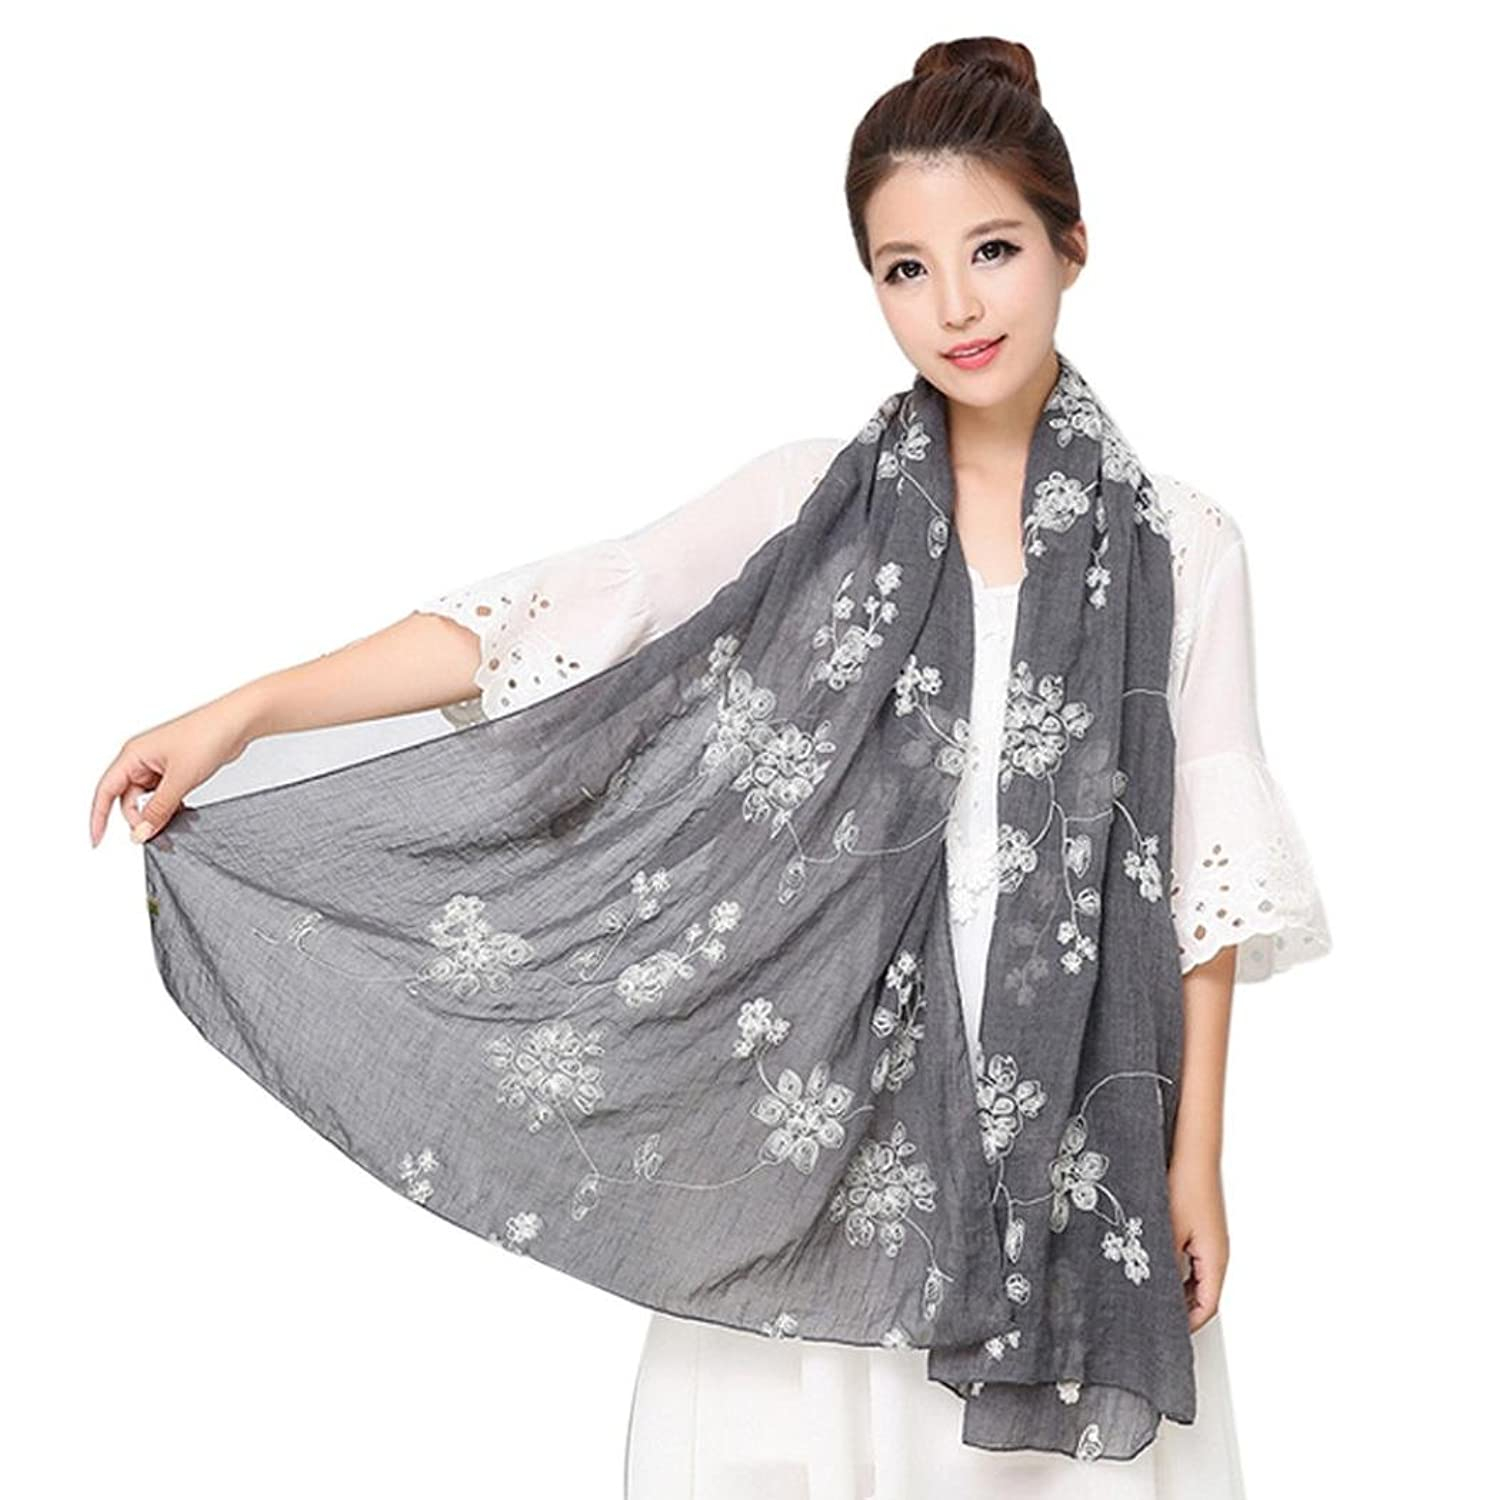 Womail 2017 Women Girls New Fashion Printed Long Section Of Scarves